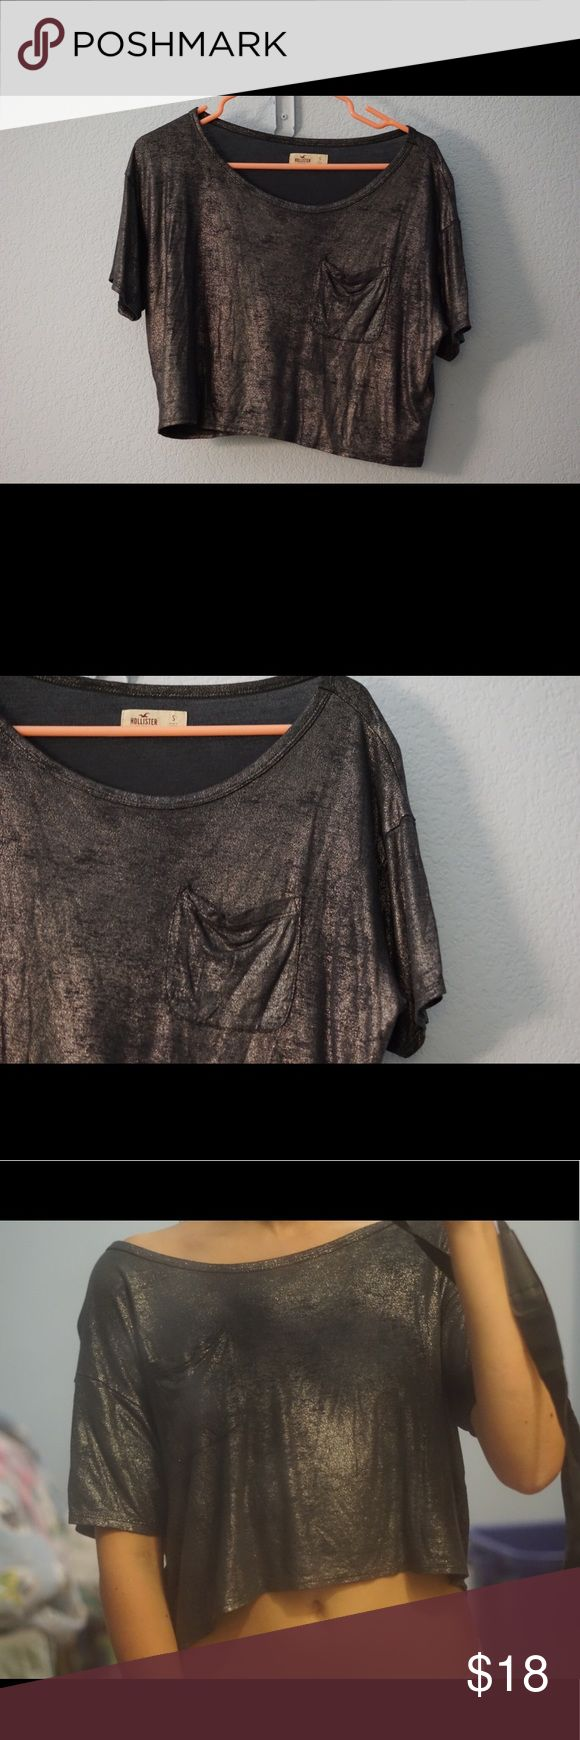 Metallic Crop Top Shimmery, flowy & oversized! Will fit xsmall - medium depending how loose or tight you want it. Never worn ✨ tags:glitter,sparkly,metallic,shimmer,boxy,pocket,shiny,concert,festival,rave,americaneagle,urbanoutfiterrs Hollister Tops Crop Tops